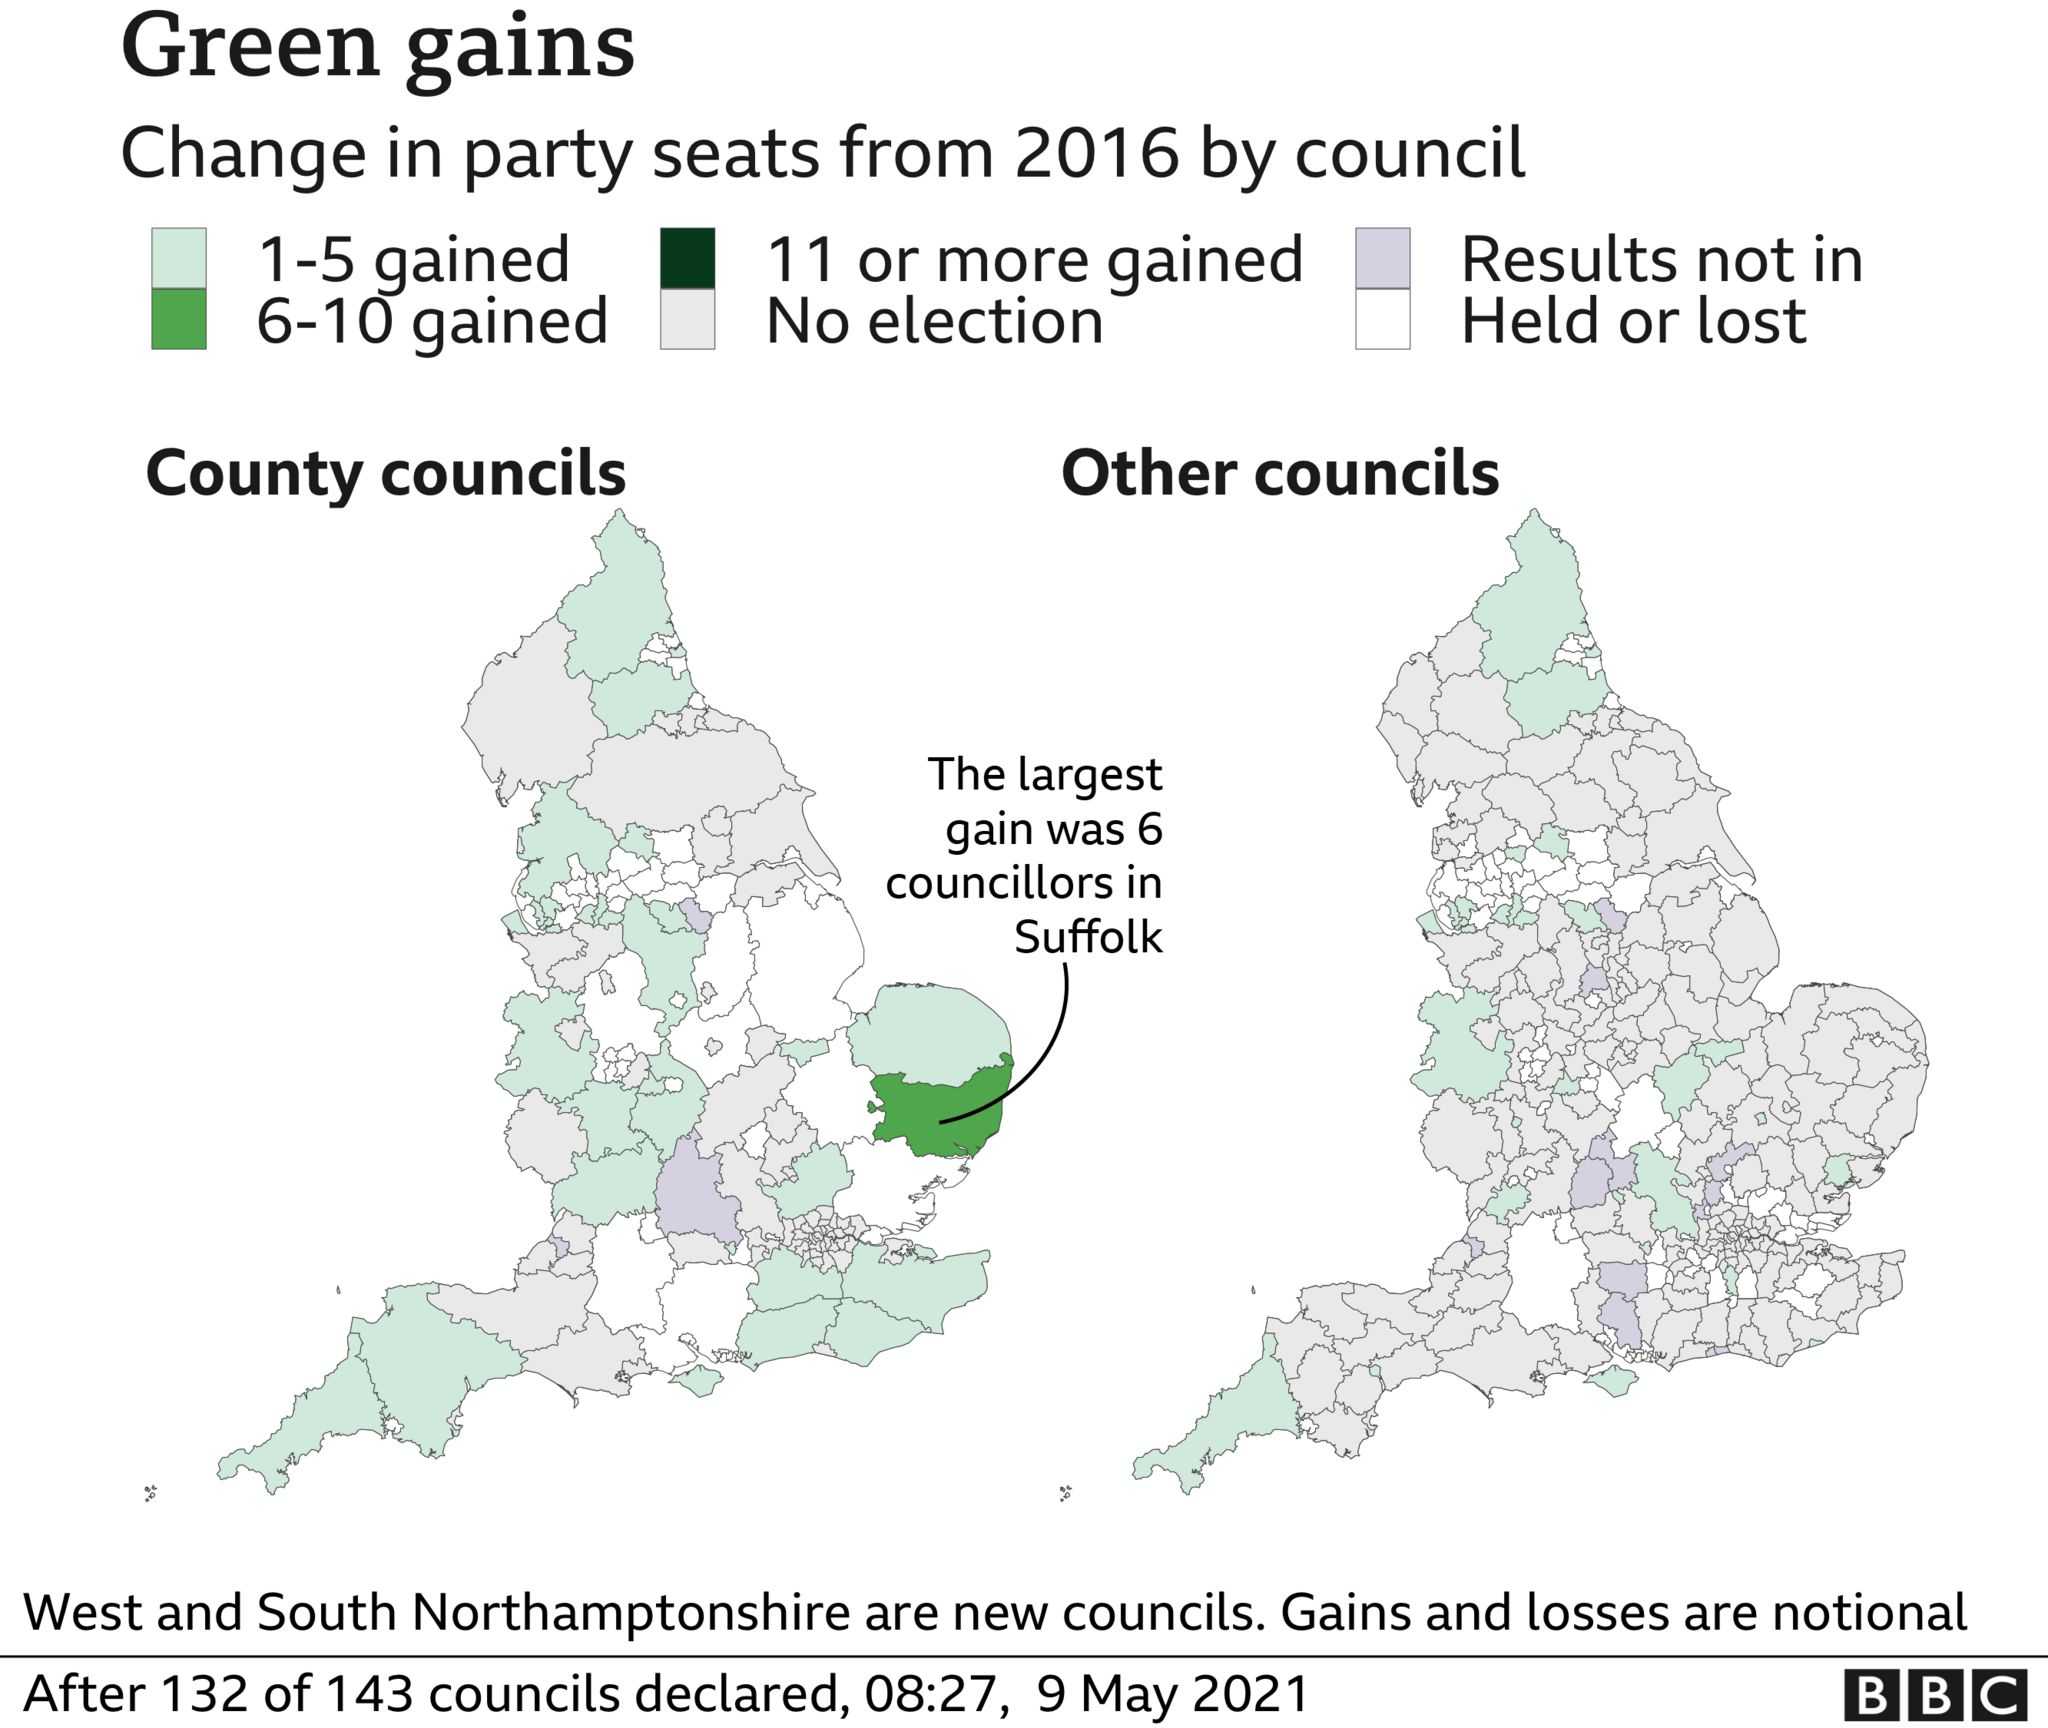 Chart showing change in party seats from 2016 by council